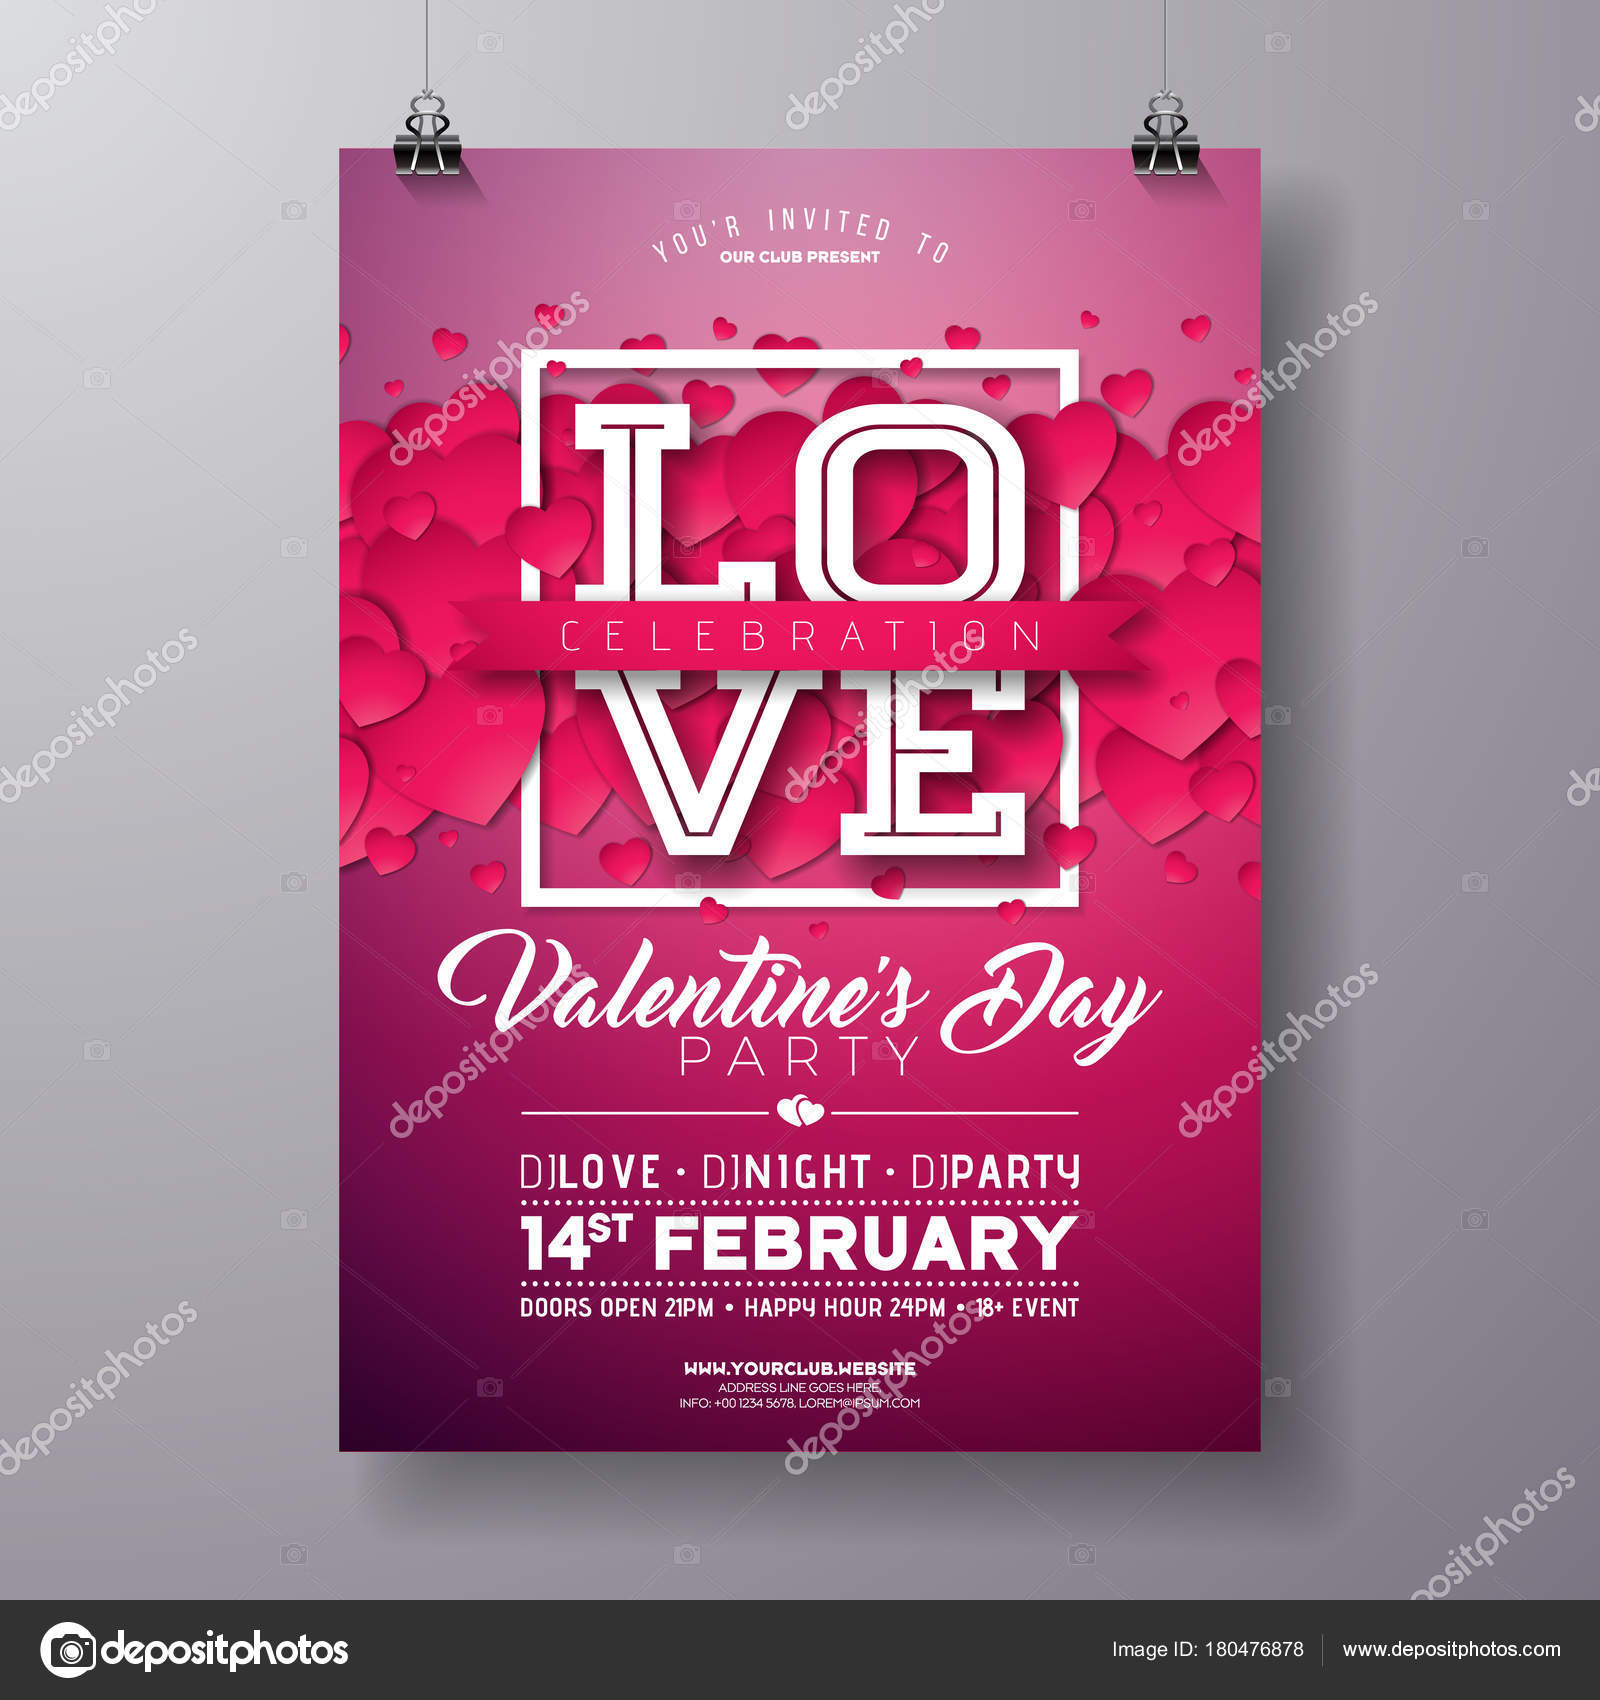 vector valentines day party flyer design with love typography letter